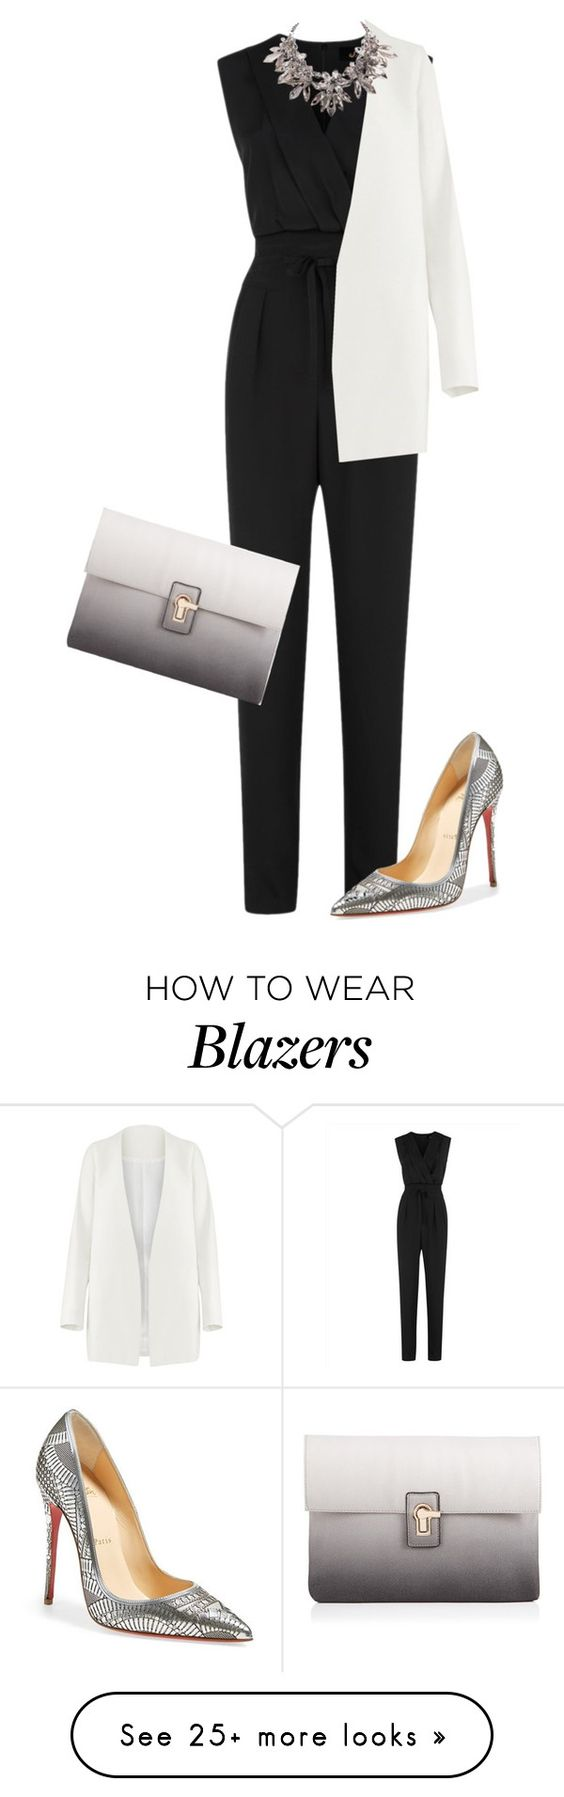 """""""Untitled #1450"""" by little-wrecked-soul on Polyvore featuring Jaeger, Lipsy, Non and Christian Louboutin"""